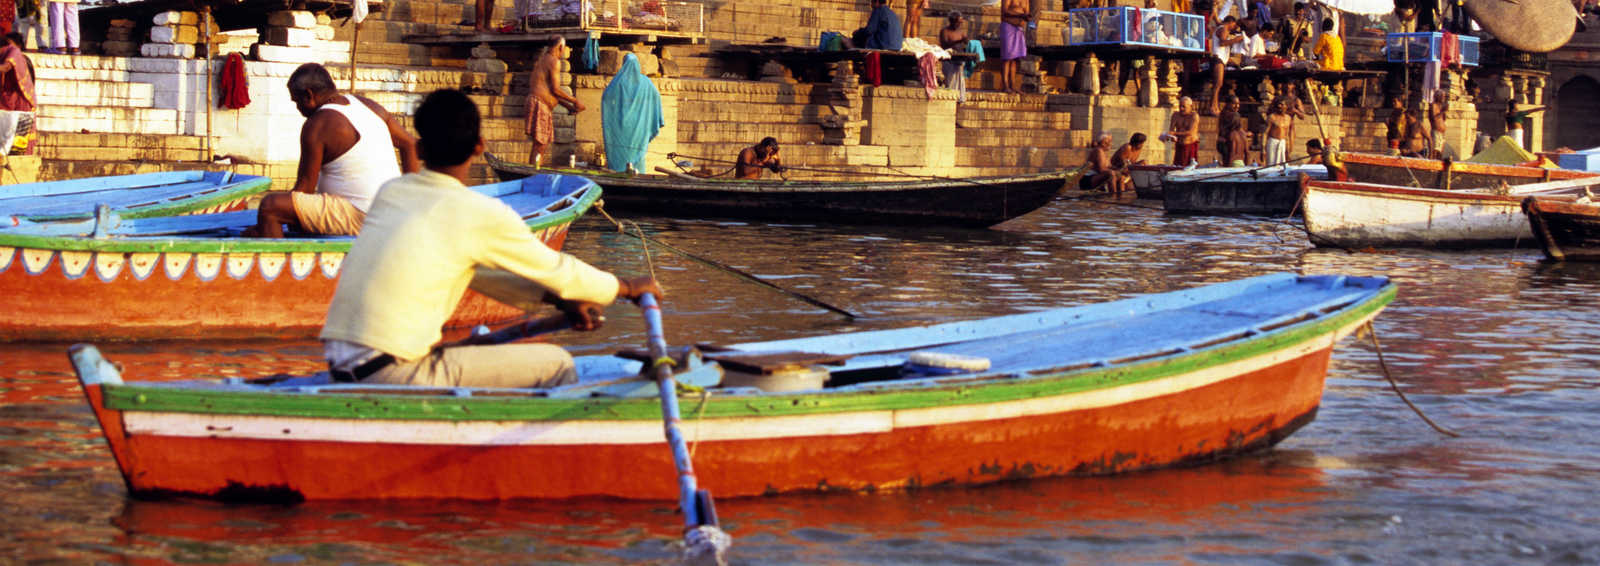 Life on The Ganges, Varanasi, India